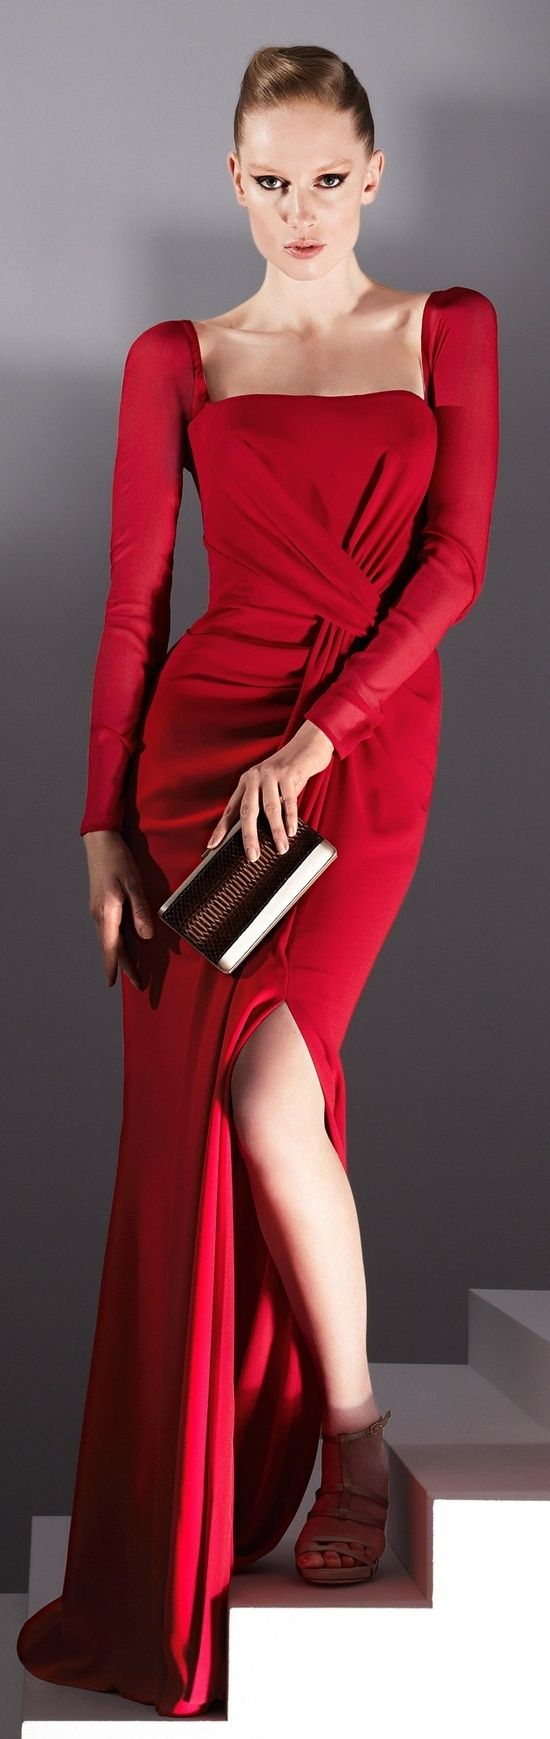 Attractive Red Dresses For A Girl Who's Interested In Fashion ~ posted by suesmith, community user.